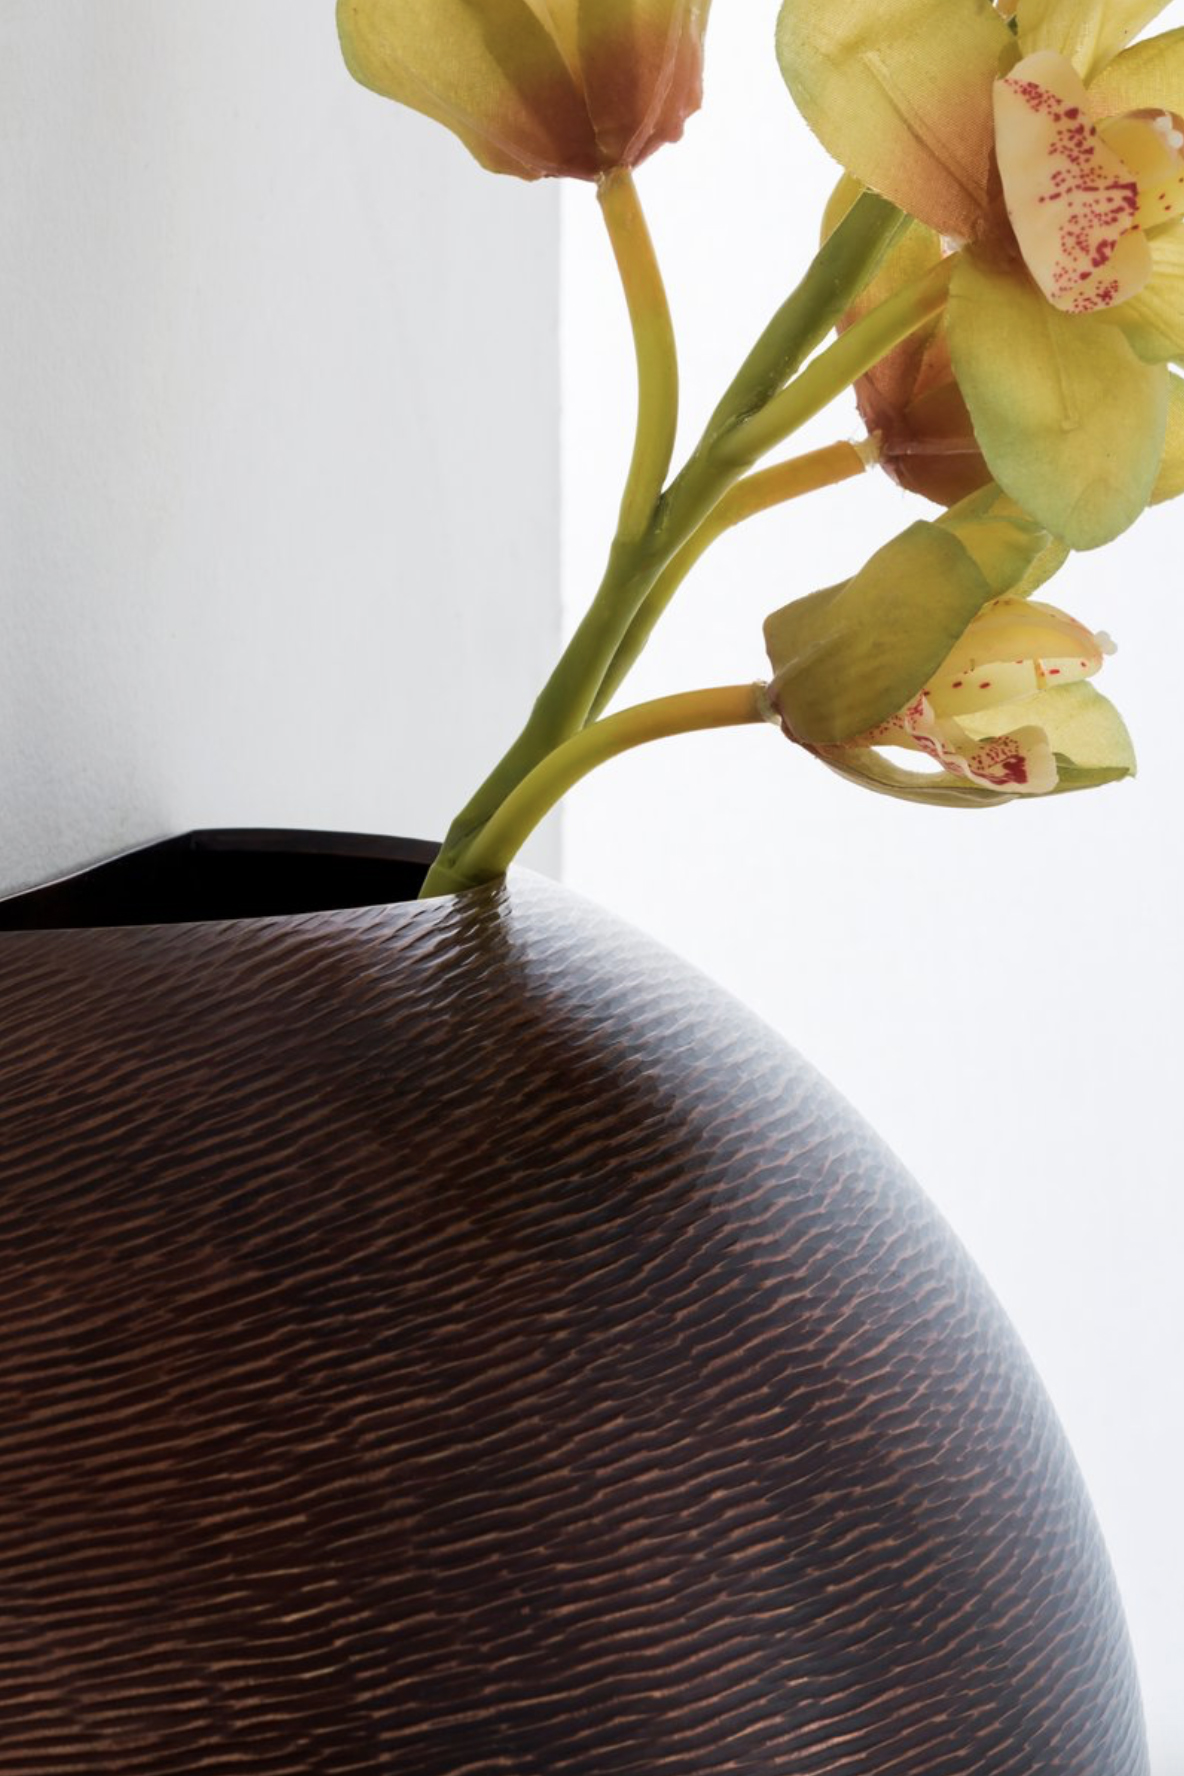 Palla Wall Vase - The Palla wall vase features a wavy texture in burnished copper.